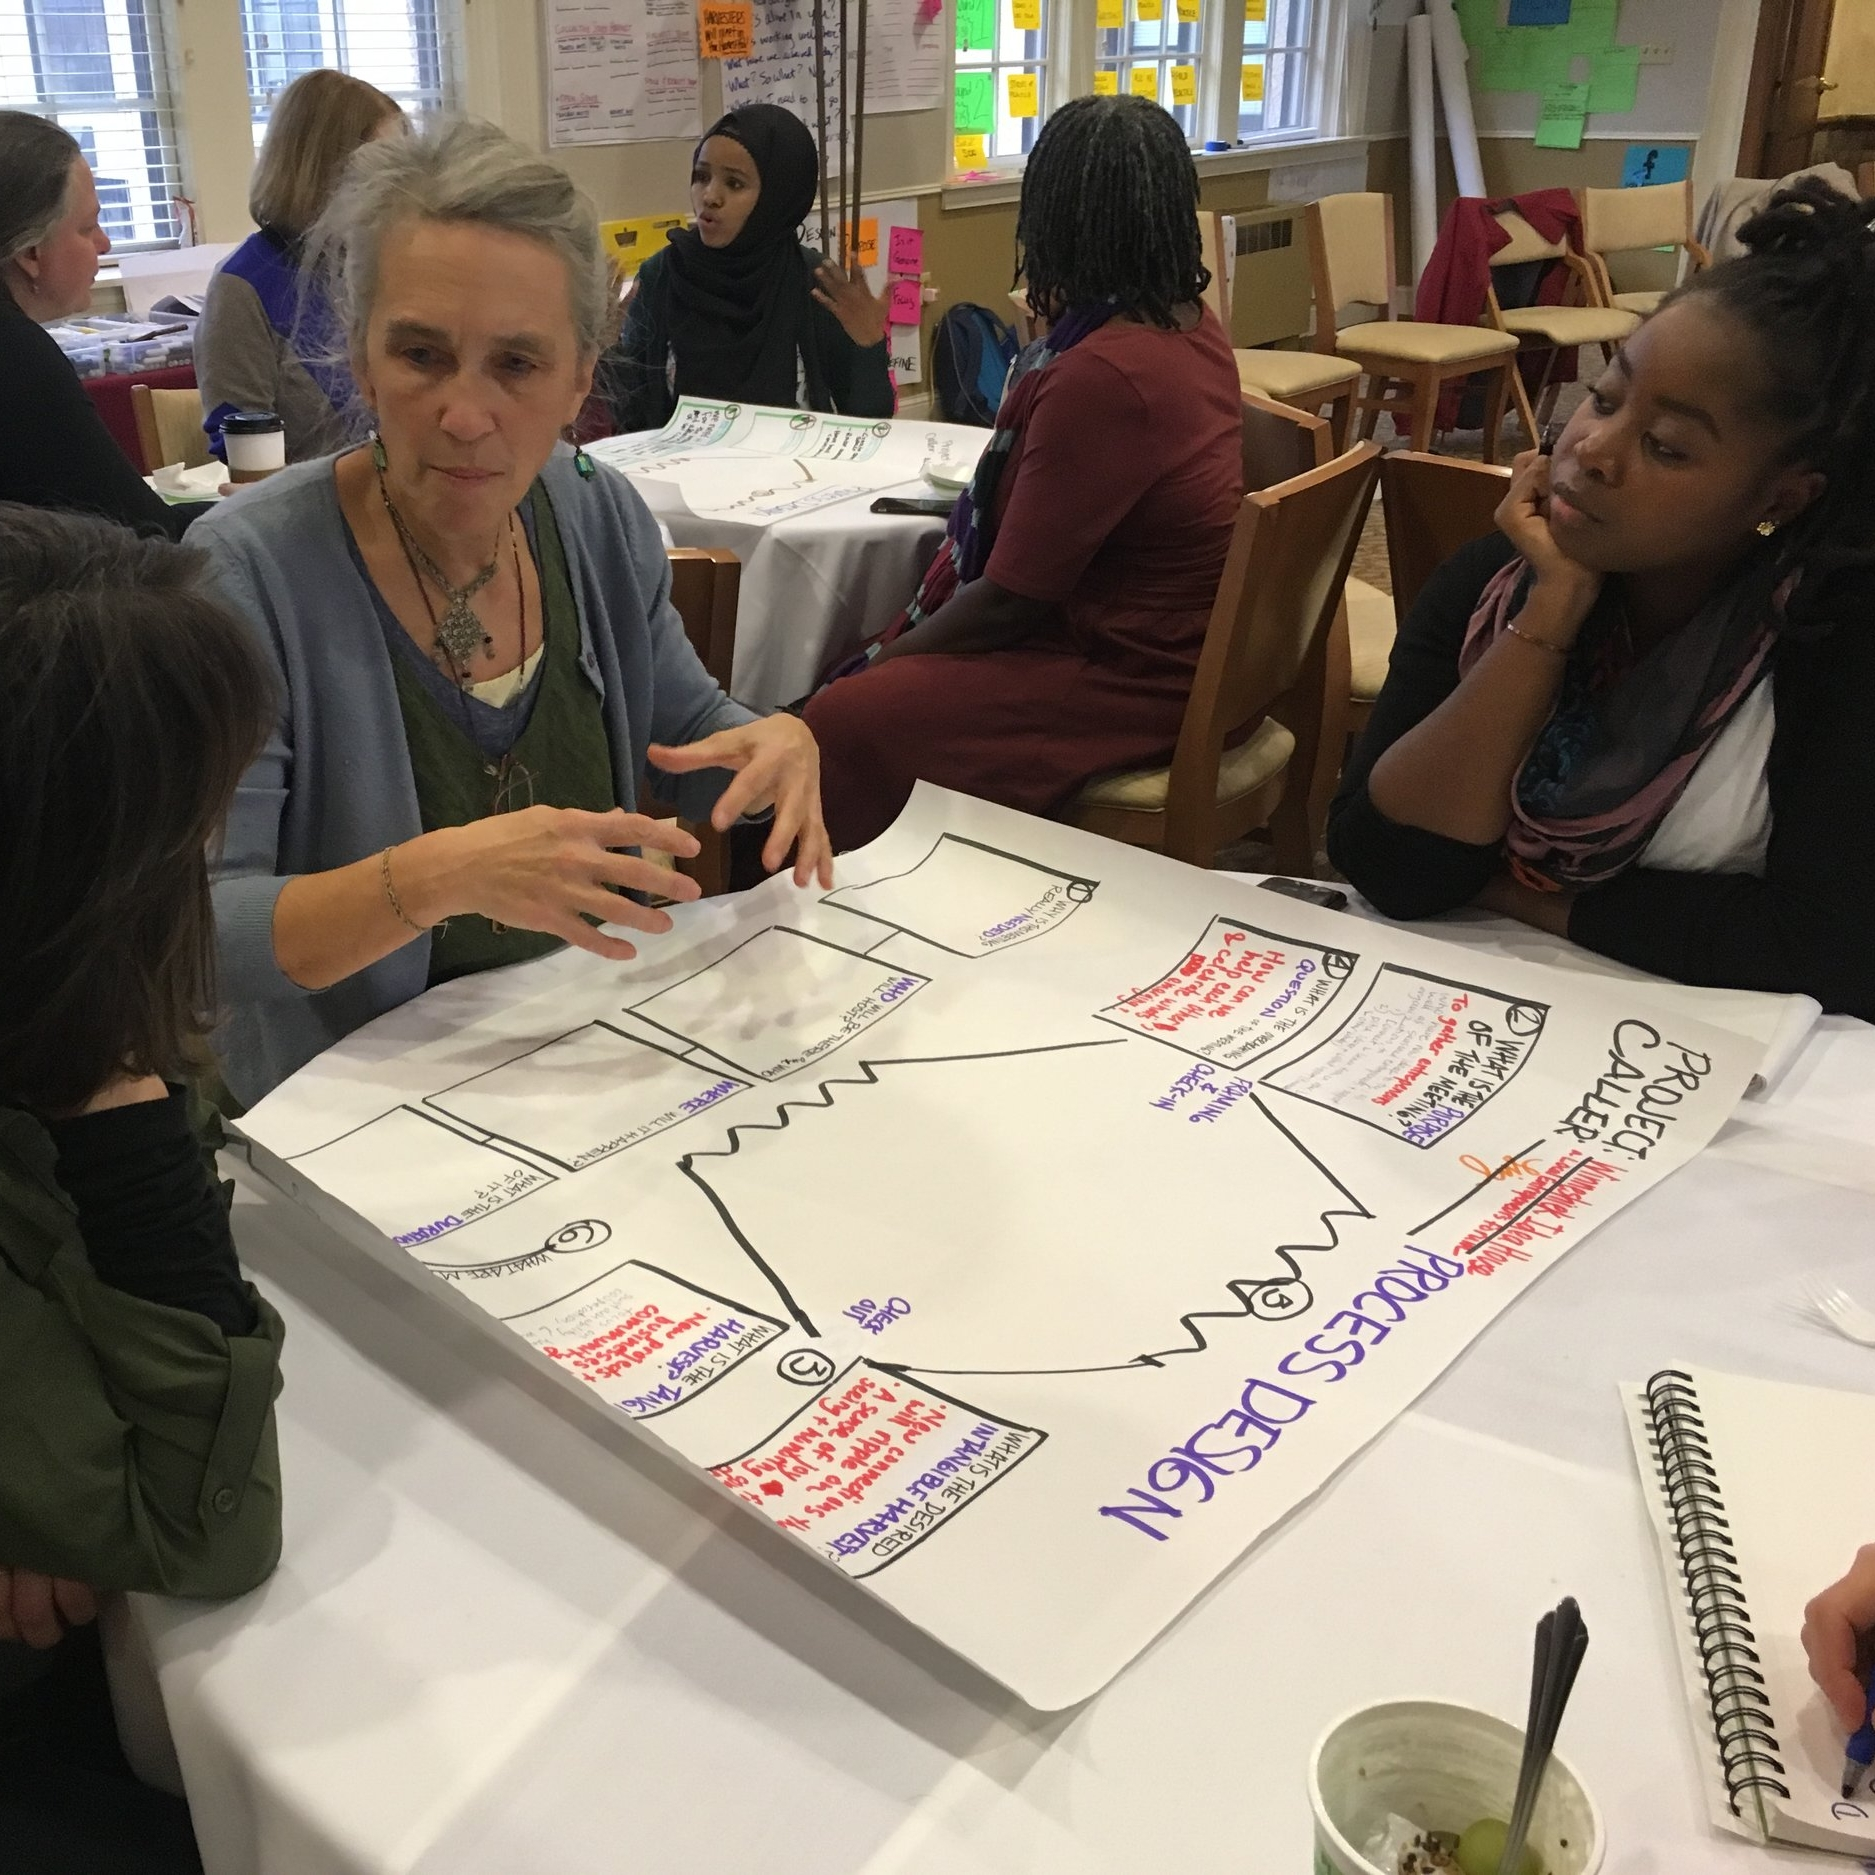 """St. Paul, Minnesota - In 2017, thirty five gathered at the Minnesota Humanities Center to explore the question: """"How do we begin building and sustaining collaborations across sectors that deepen relationships, leverage resources, and create greater impact?"""